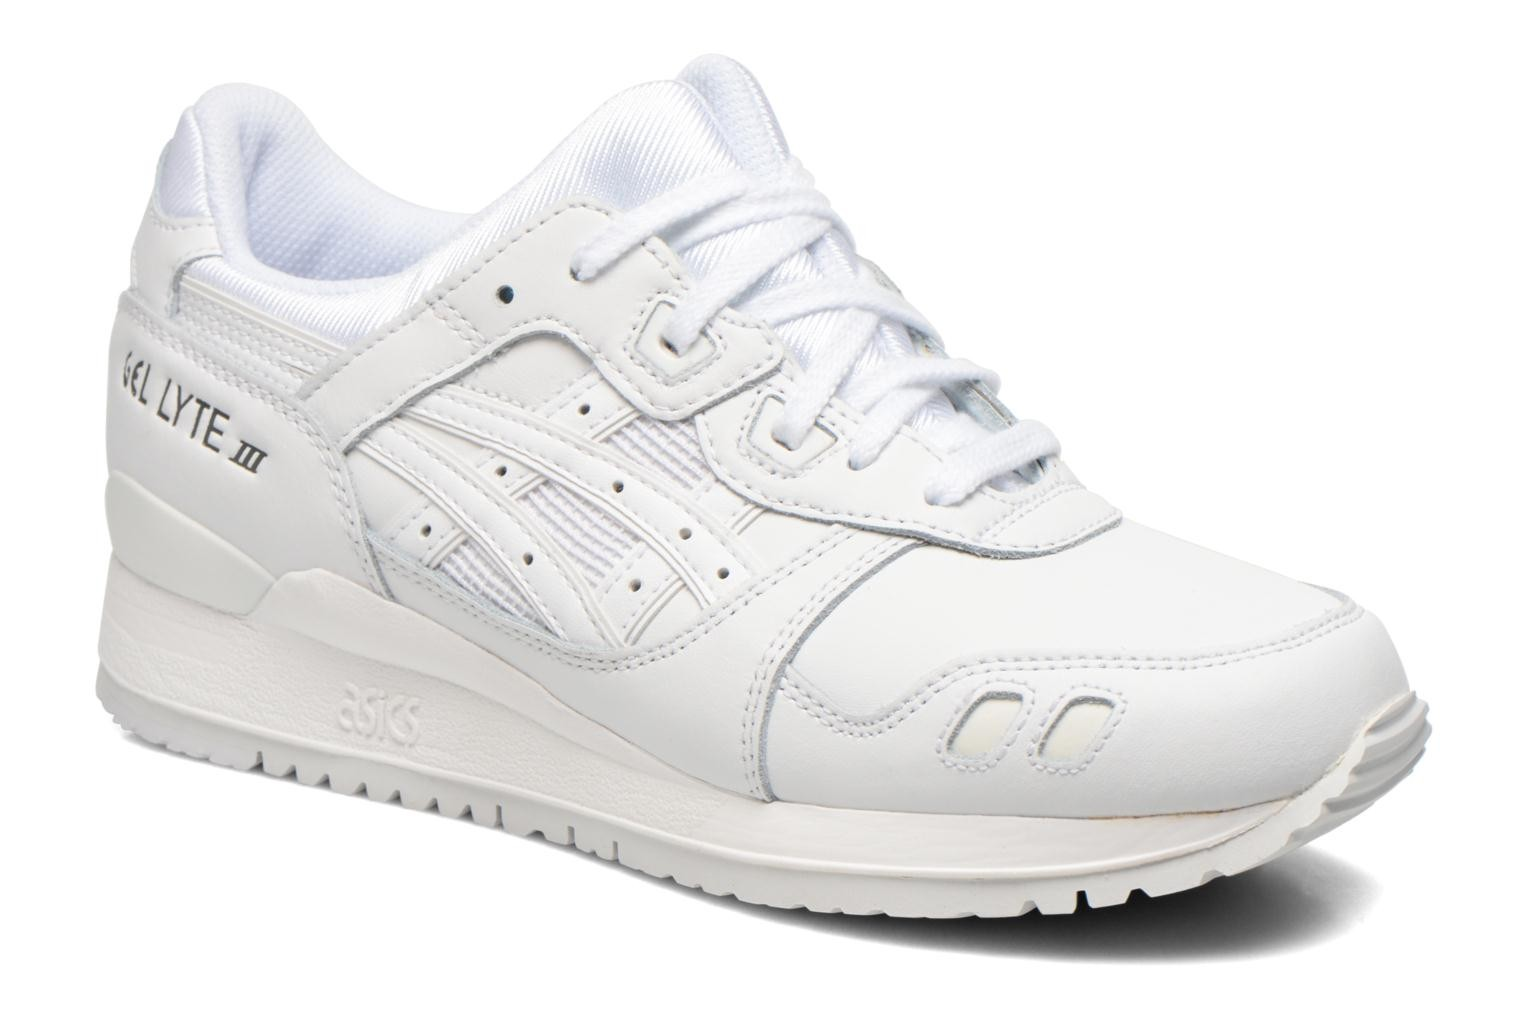 Blanche Asic Gel Et 3 Rouge Lyte xCroedB